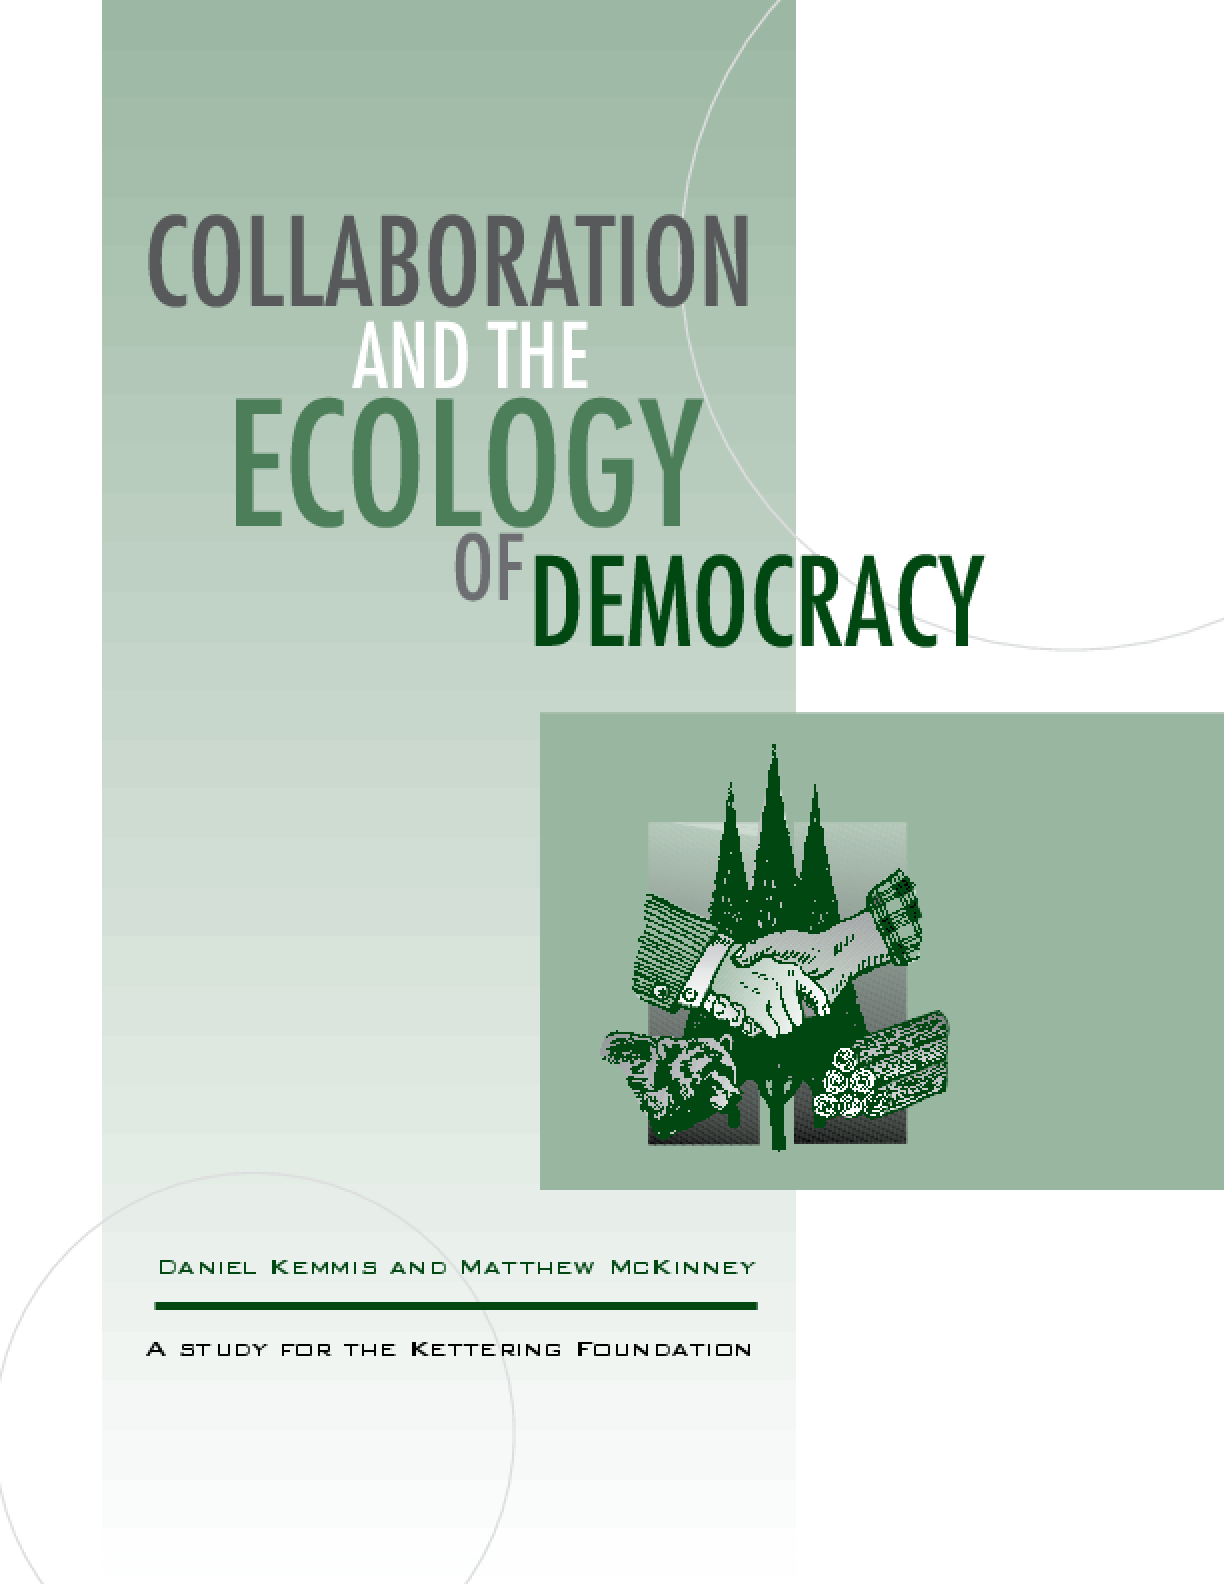 Collaboration and the Ecology of Democracy